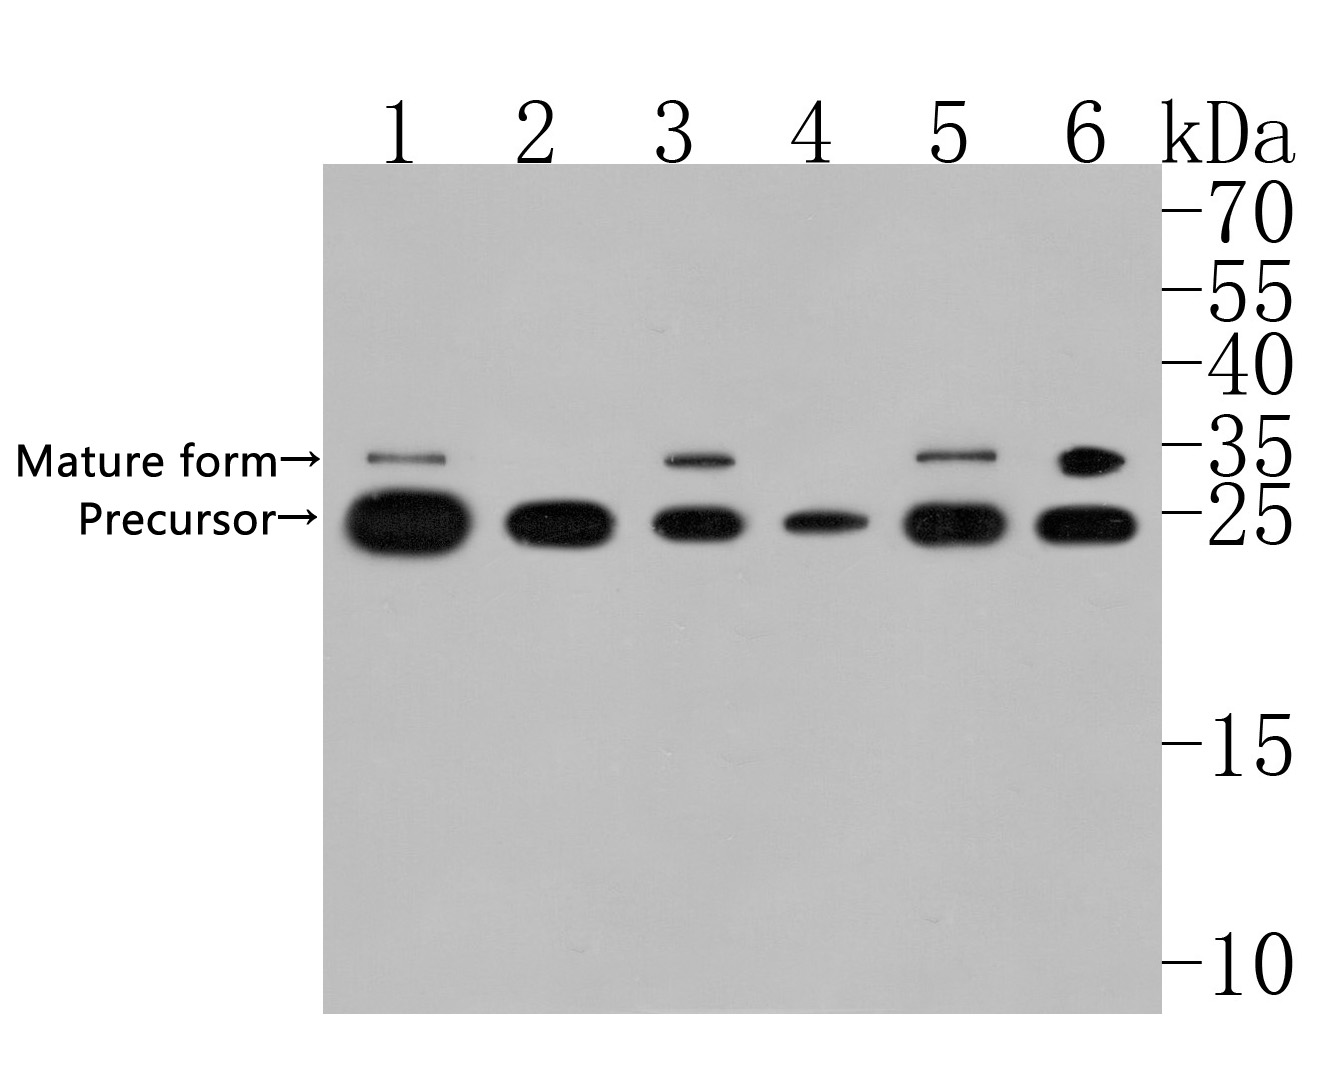 Western blot analysis of SLC31A1 on different lysates. Proteins were transferred to a PVDF membrane and blocked with 5% BSA in PBS for 1 hour at room temperature. The primary antibody (HA720005, 1/500) was used in 5% BSA at room temperature for 2 hours. Goat Anti-Rabbit IgG - HRP Secondary Antibody (HA1001) at 1:5,000 dilution was used for 1 hour at room temperature.<br /> Positive control: <br /> Lane 1: SW480 cell lysate<br /> Lane 2: A549 cell lysate<br /> Lane 3: HepG2 cell lysate<br /> Lane 4: SKOV-3 cell lysate<br /> Lane 5: 293 cell lysate<br /> Lane 6: HCT116 cell lysate